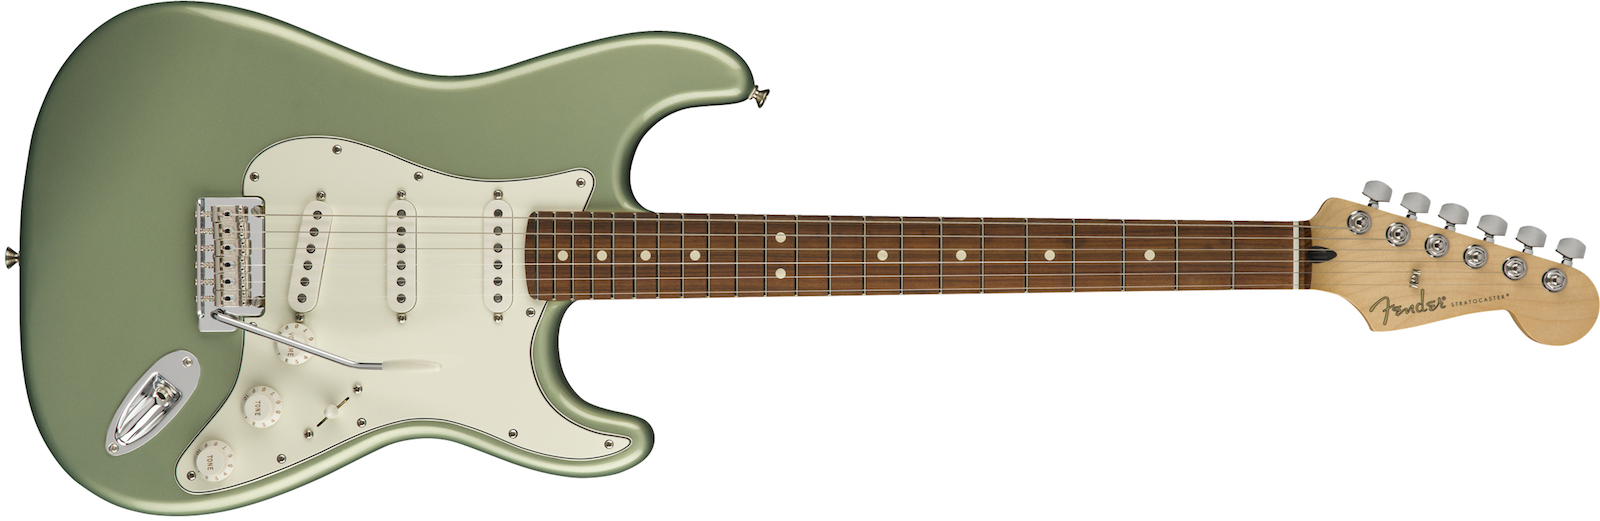 【新品】Fender Player Stratocaster Pau Ferro Fingerboard ~Sage Green Metallic~【お取り寄せ】【送料無料】【池袋店】